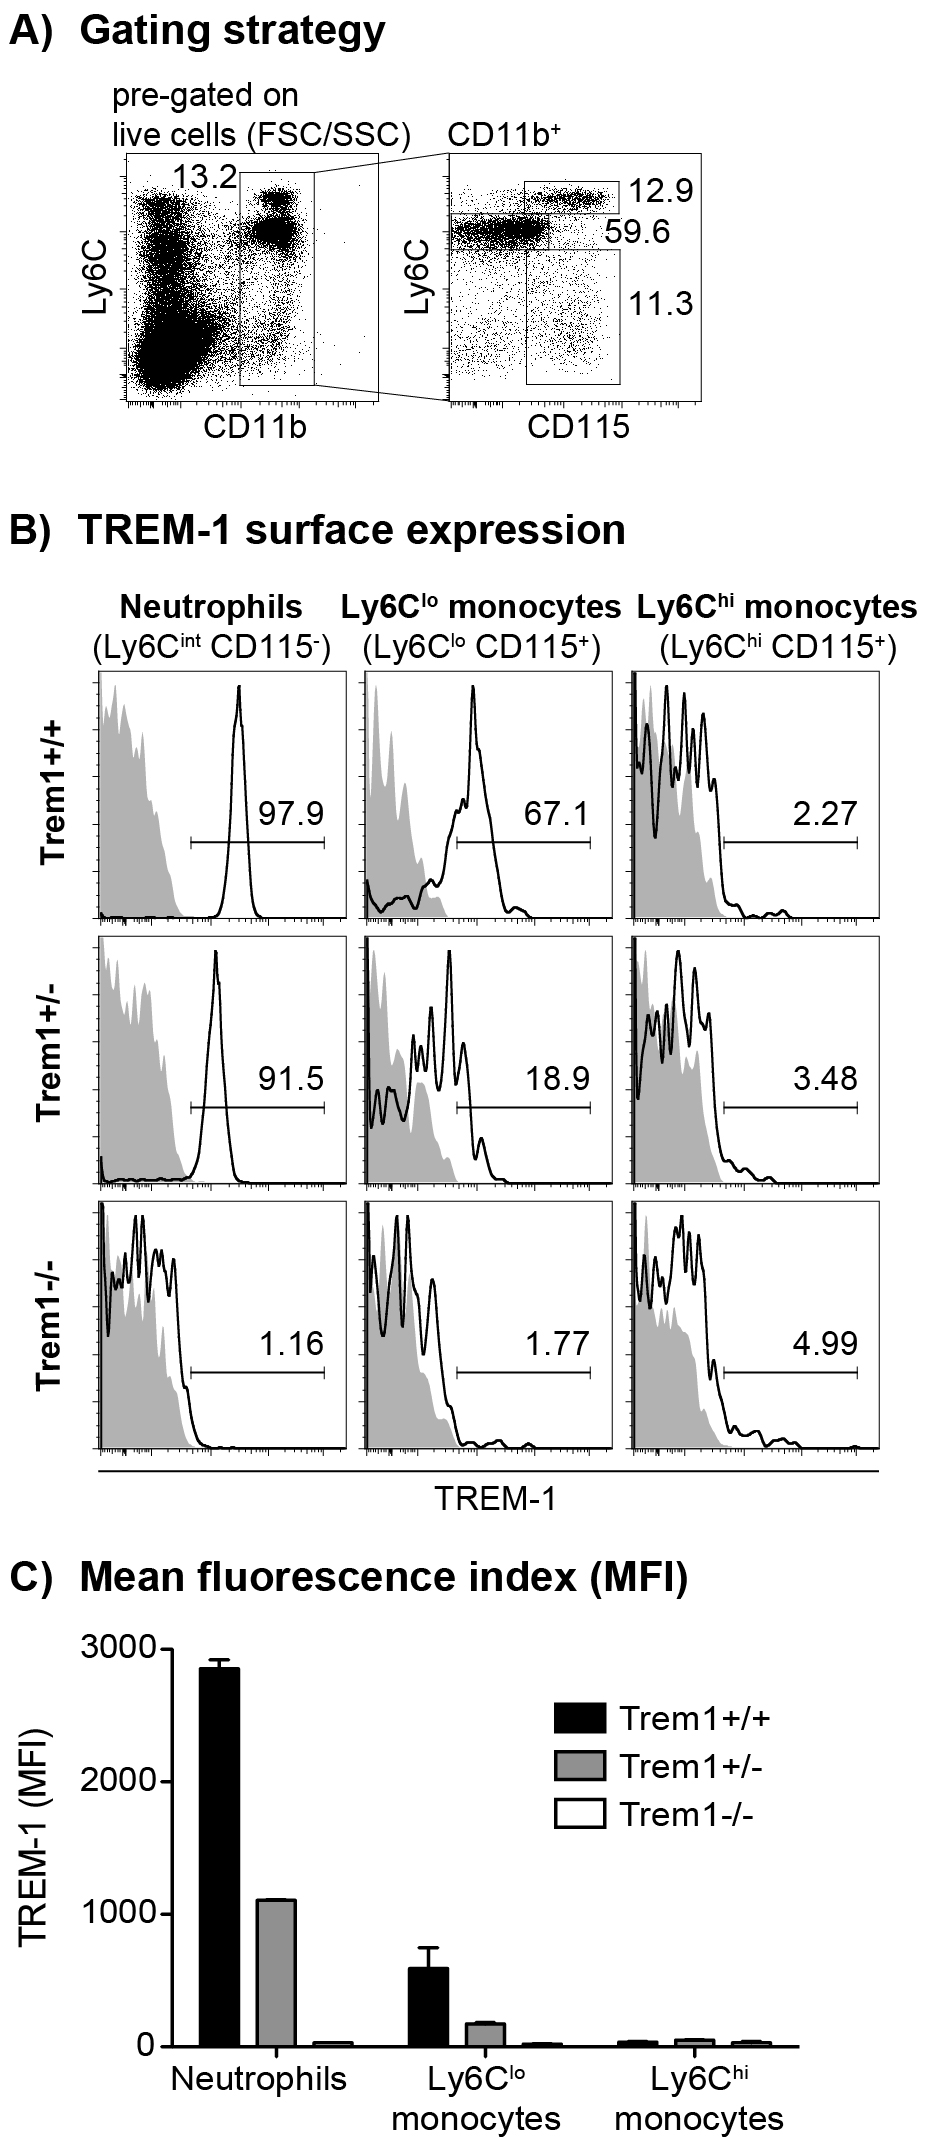 TREM-1 surface expression by peripheral blood myeloid cell subsets from wildtype versus <i>Trem1</i>-deficient mice.